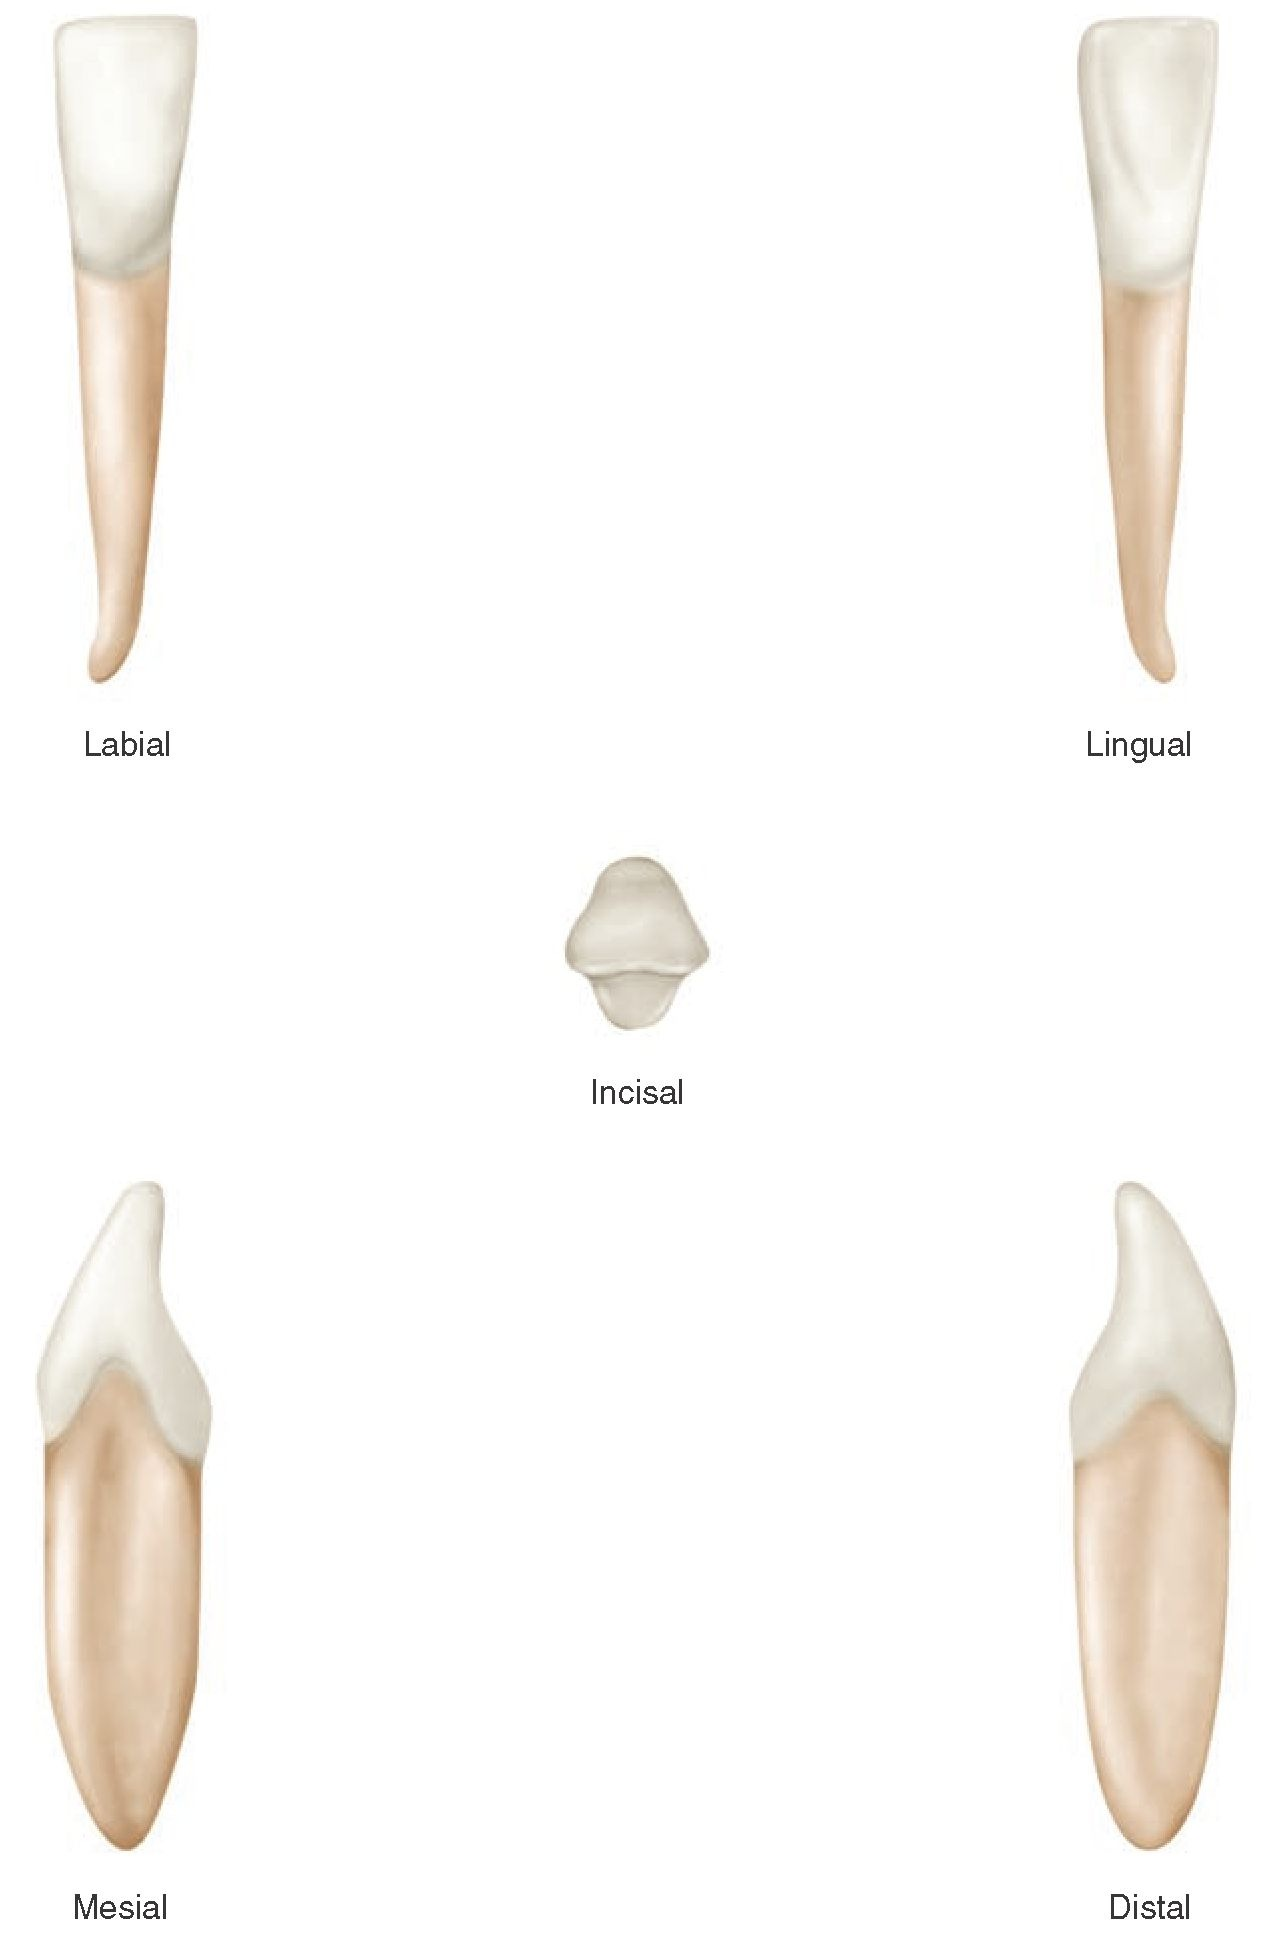 The Permanent Mandibular Incisors Dental Anatomy Physiology And